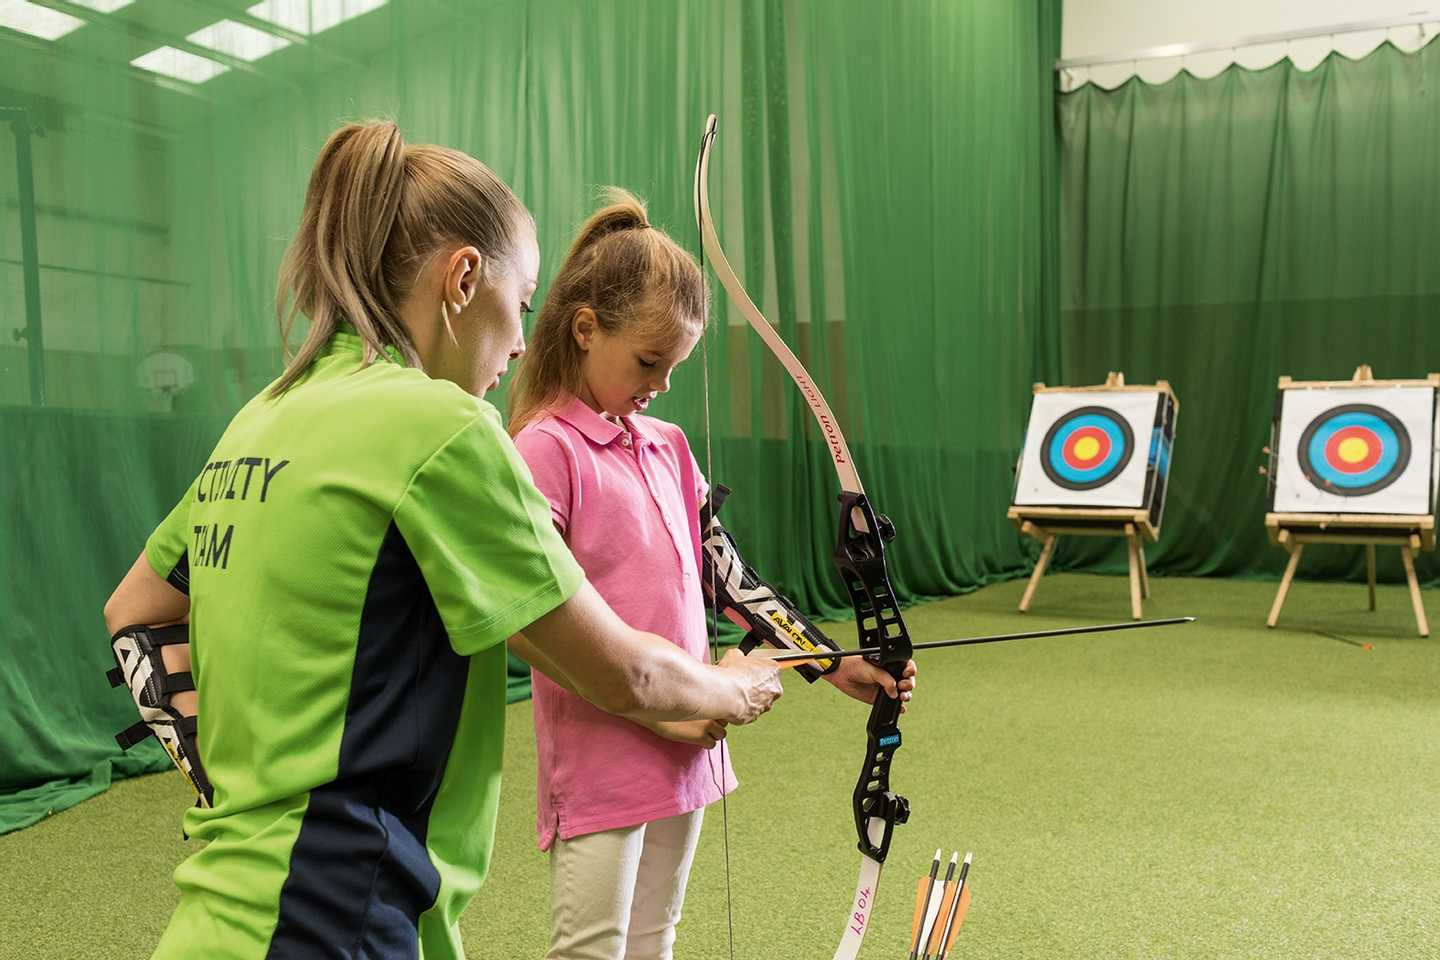 Family playing indoor archery